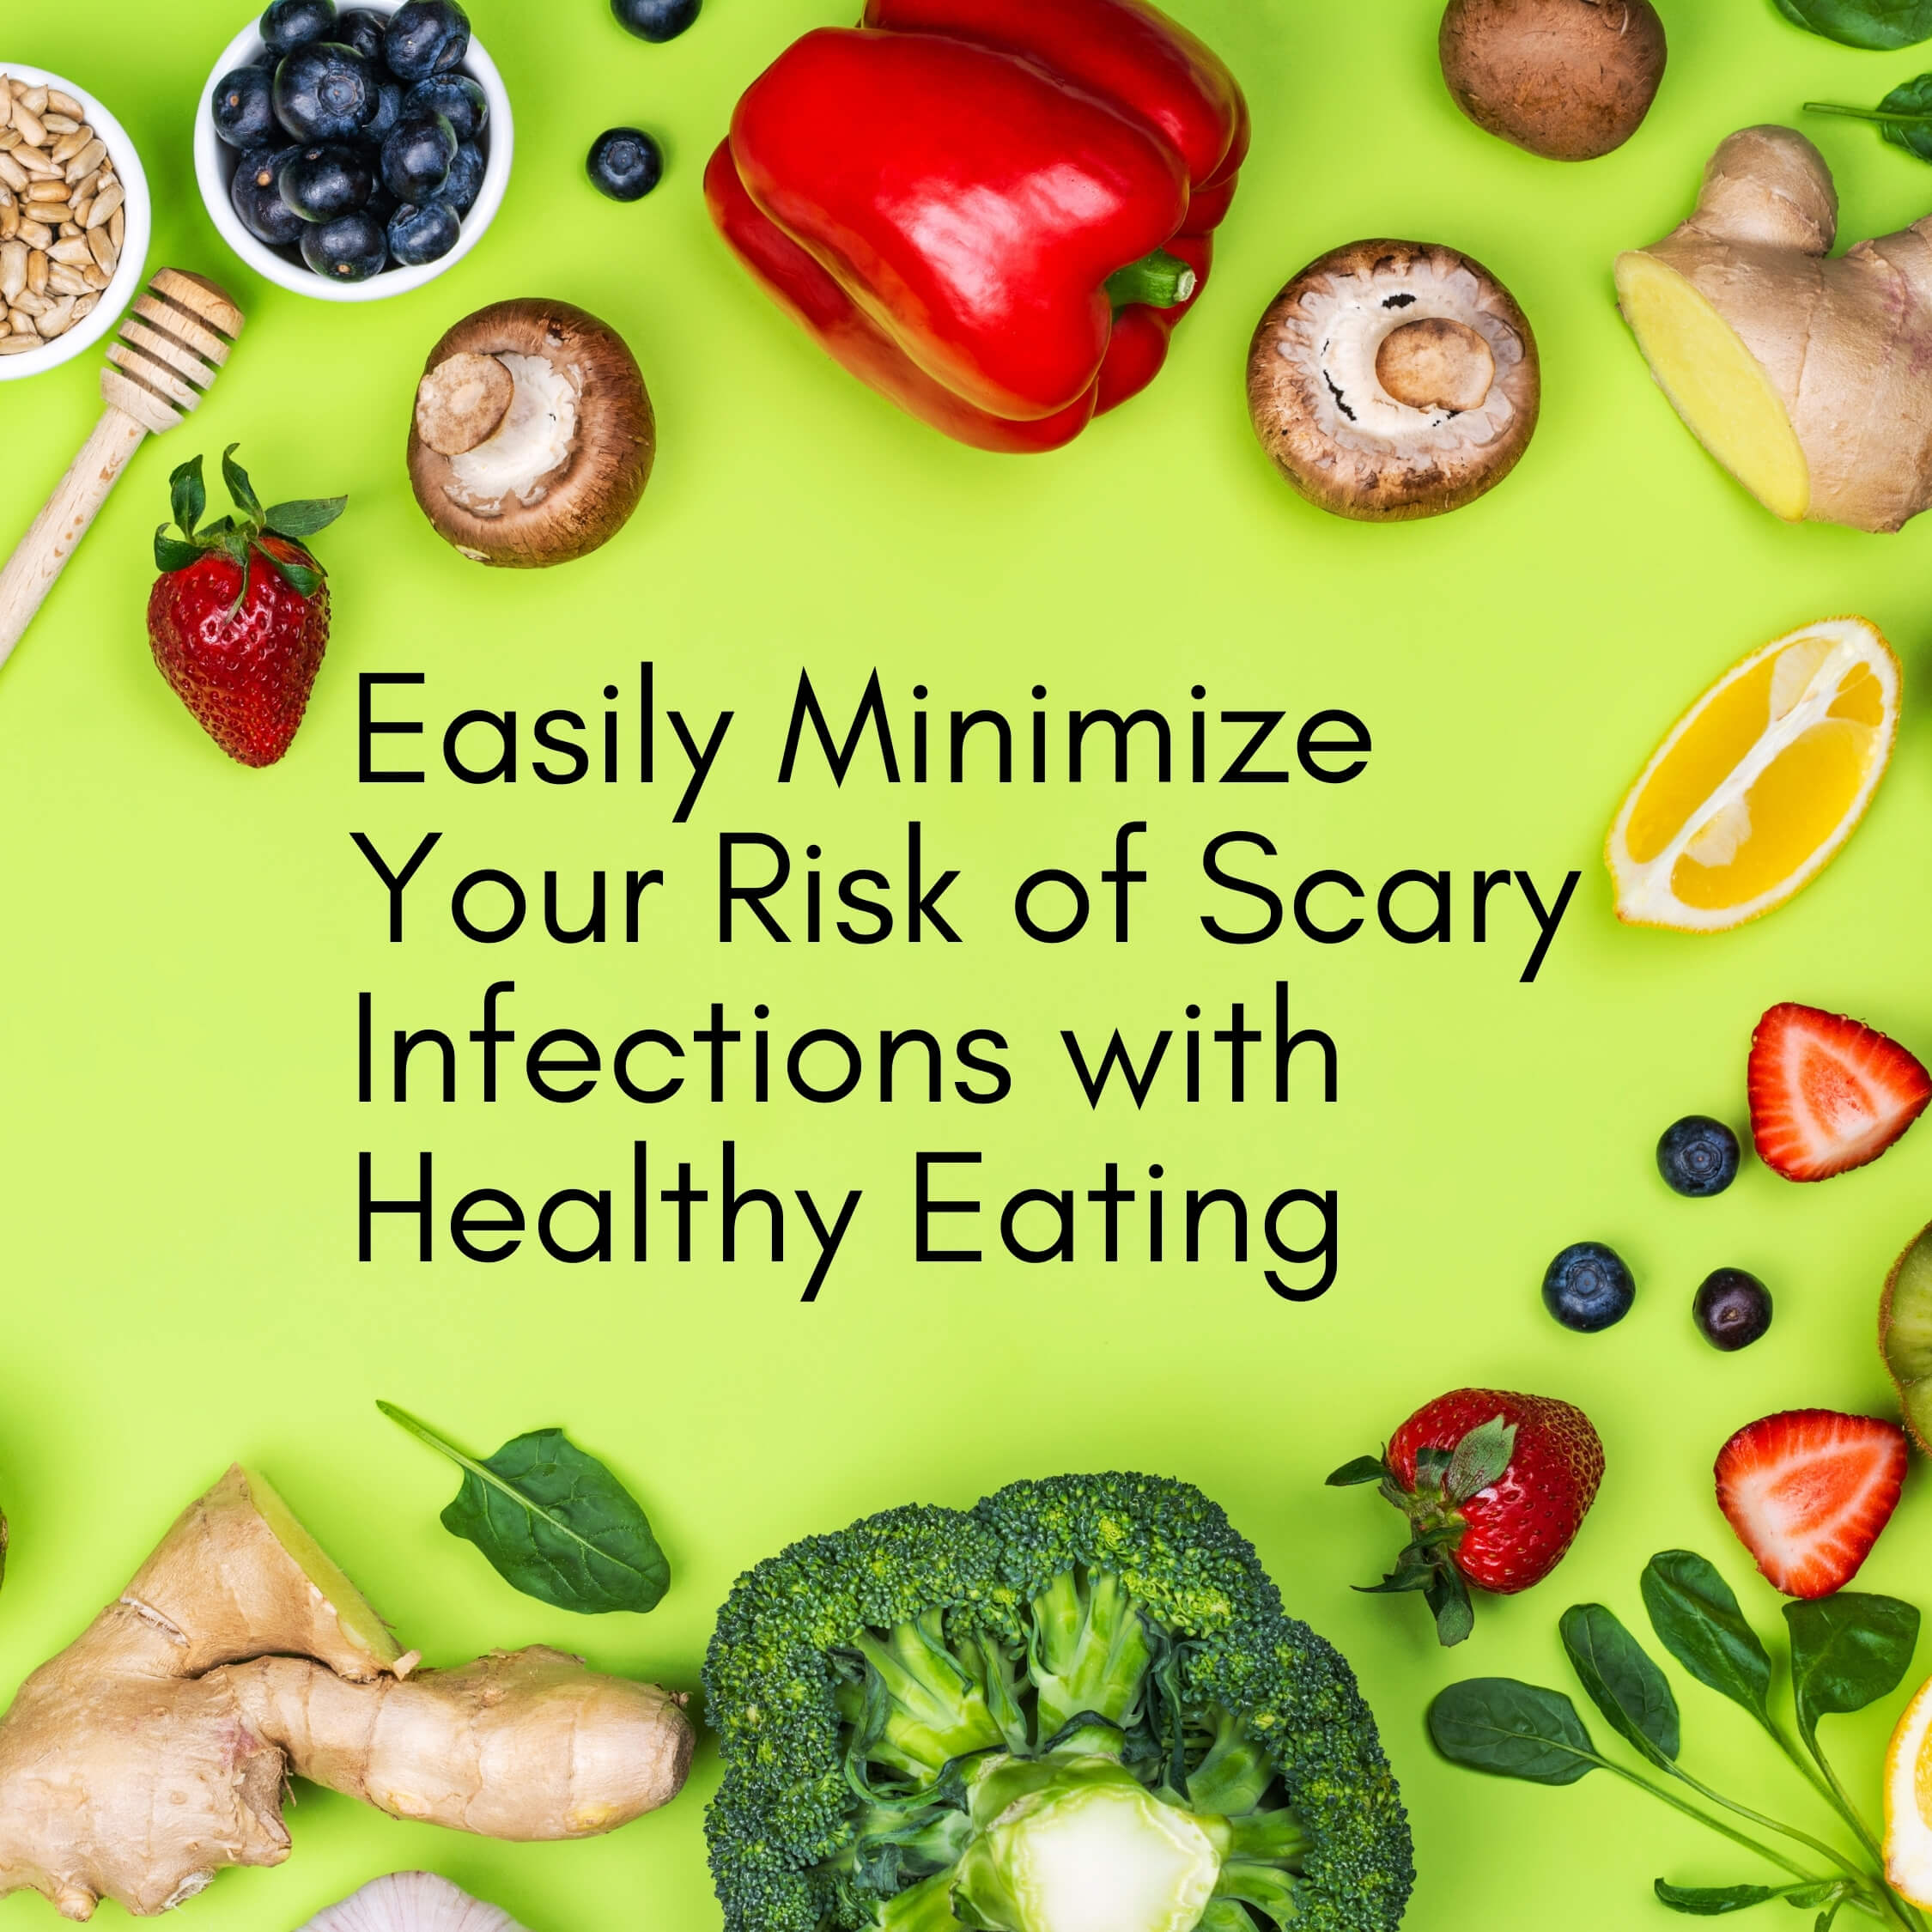 Healthy food minimizes infections